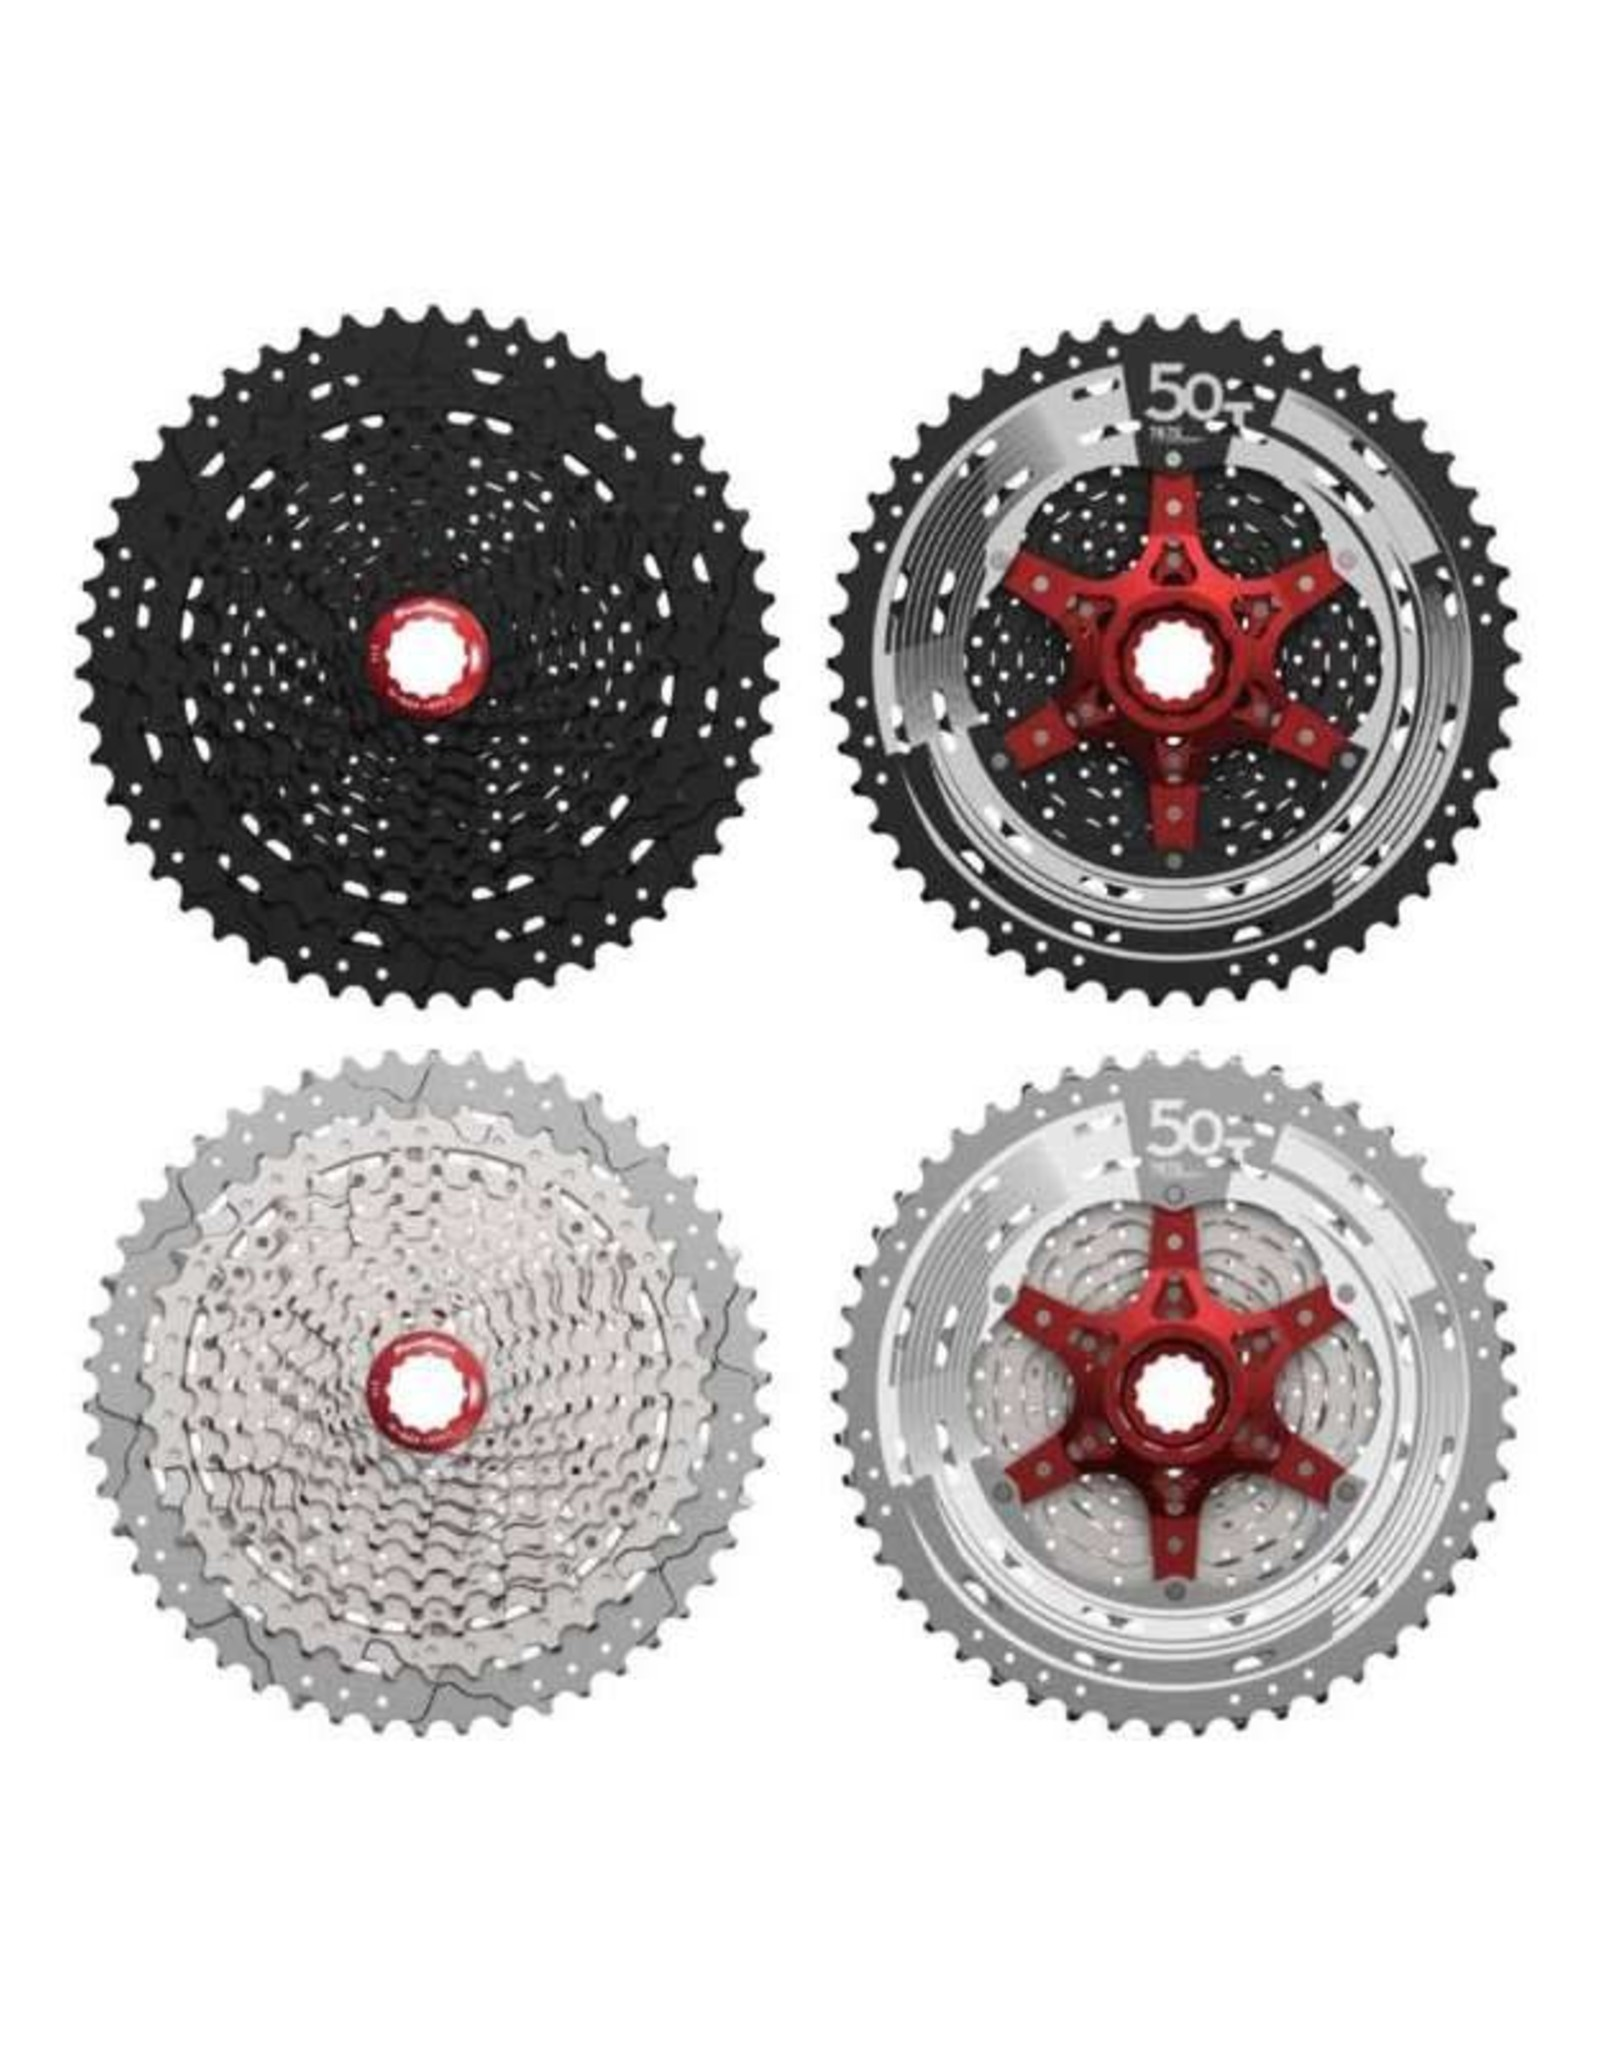 SunRace SunRace MX8 11-speed 11-50T Cassette: Black